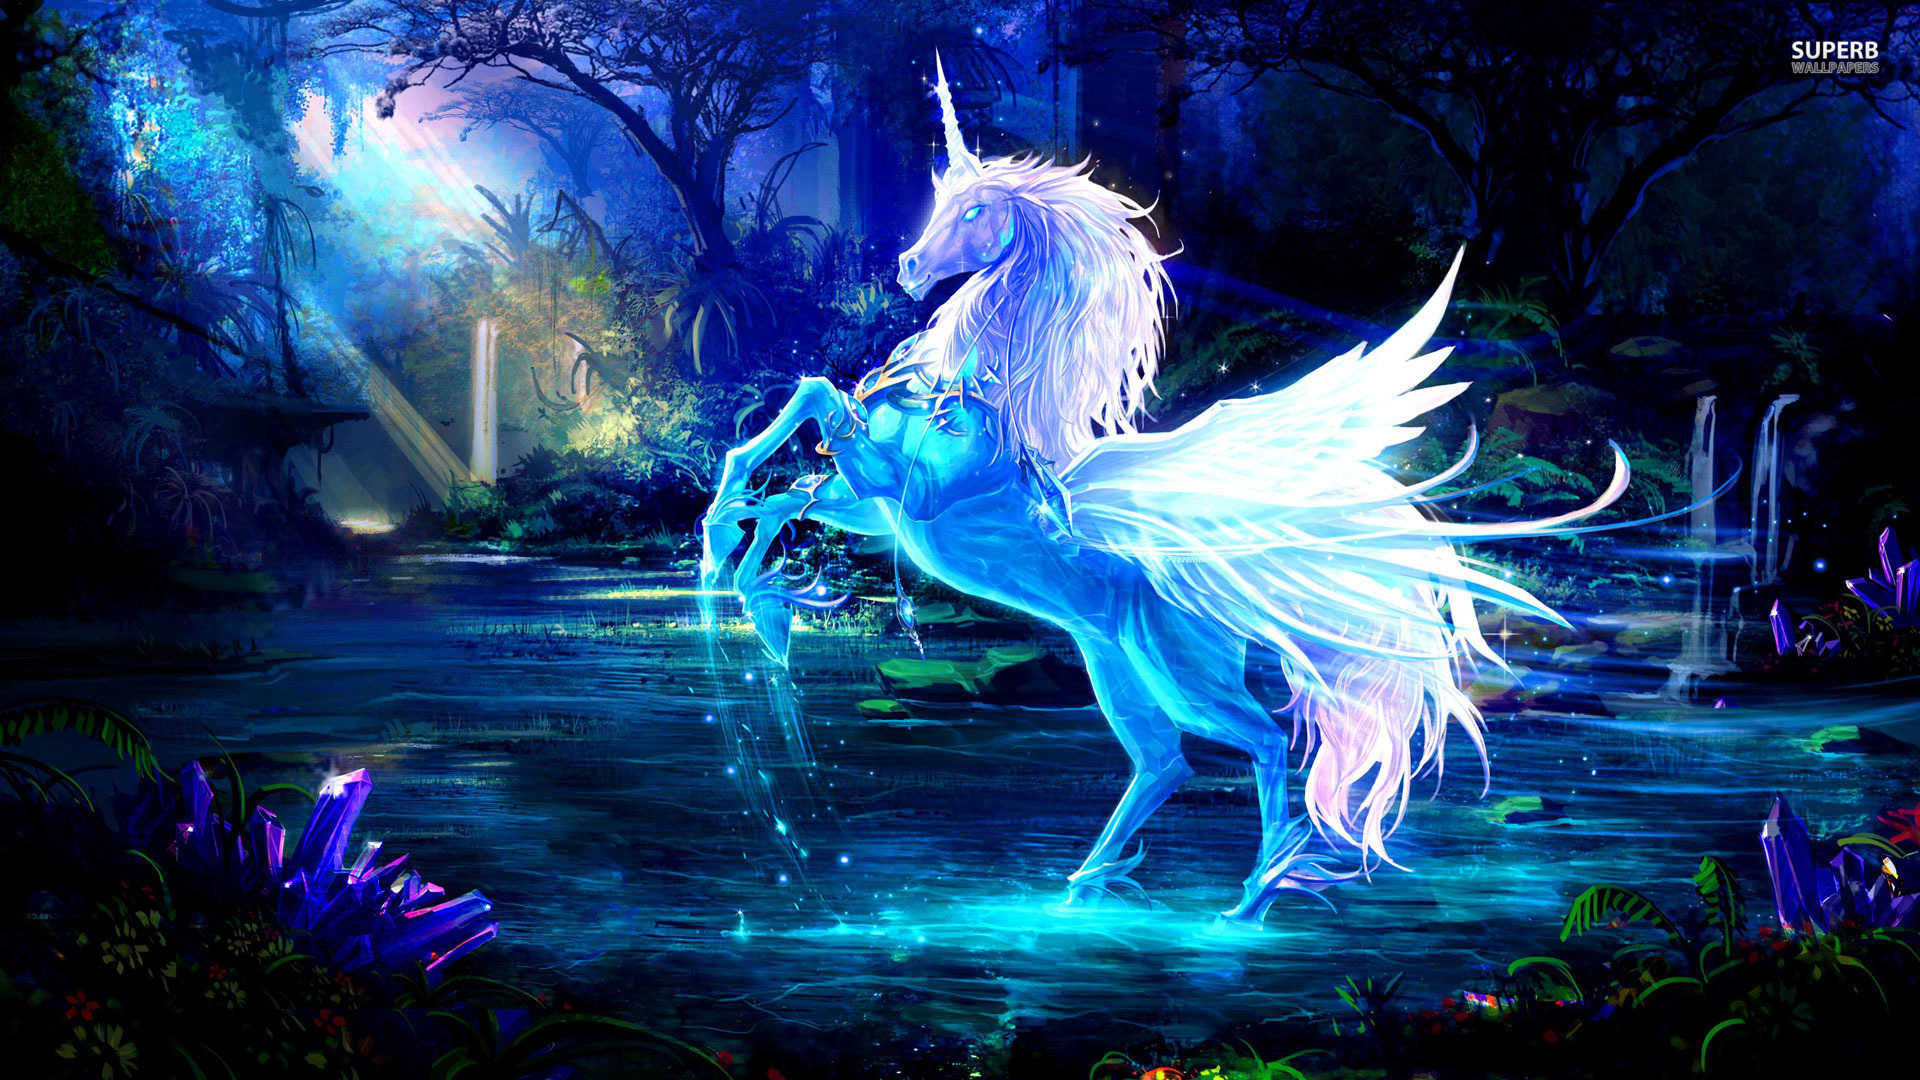 Real Unicorn Wallpaper Images amp Pictures   Becuo 1920x1080